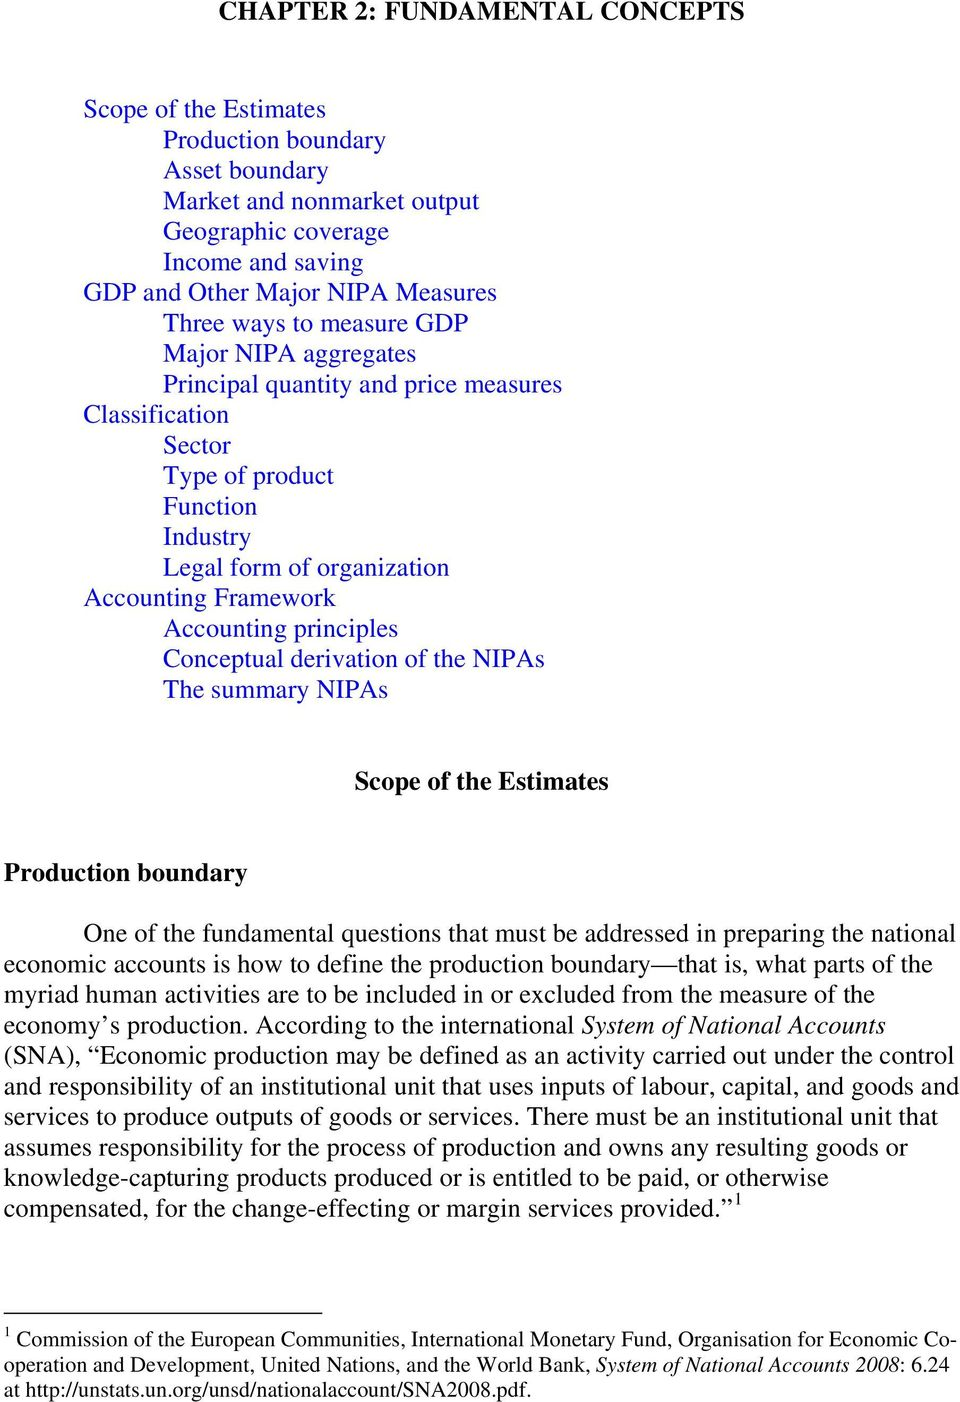 principles Conceptual derivation of the NIPAs The summary NIPAs Scope of the Estimates Production boundary One of the fundamental questions that must be addressed in preparing the national economic